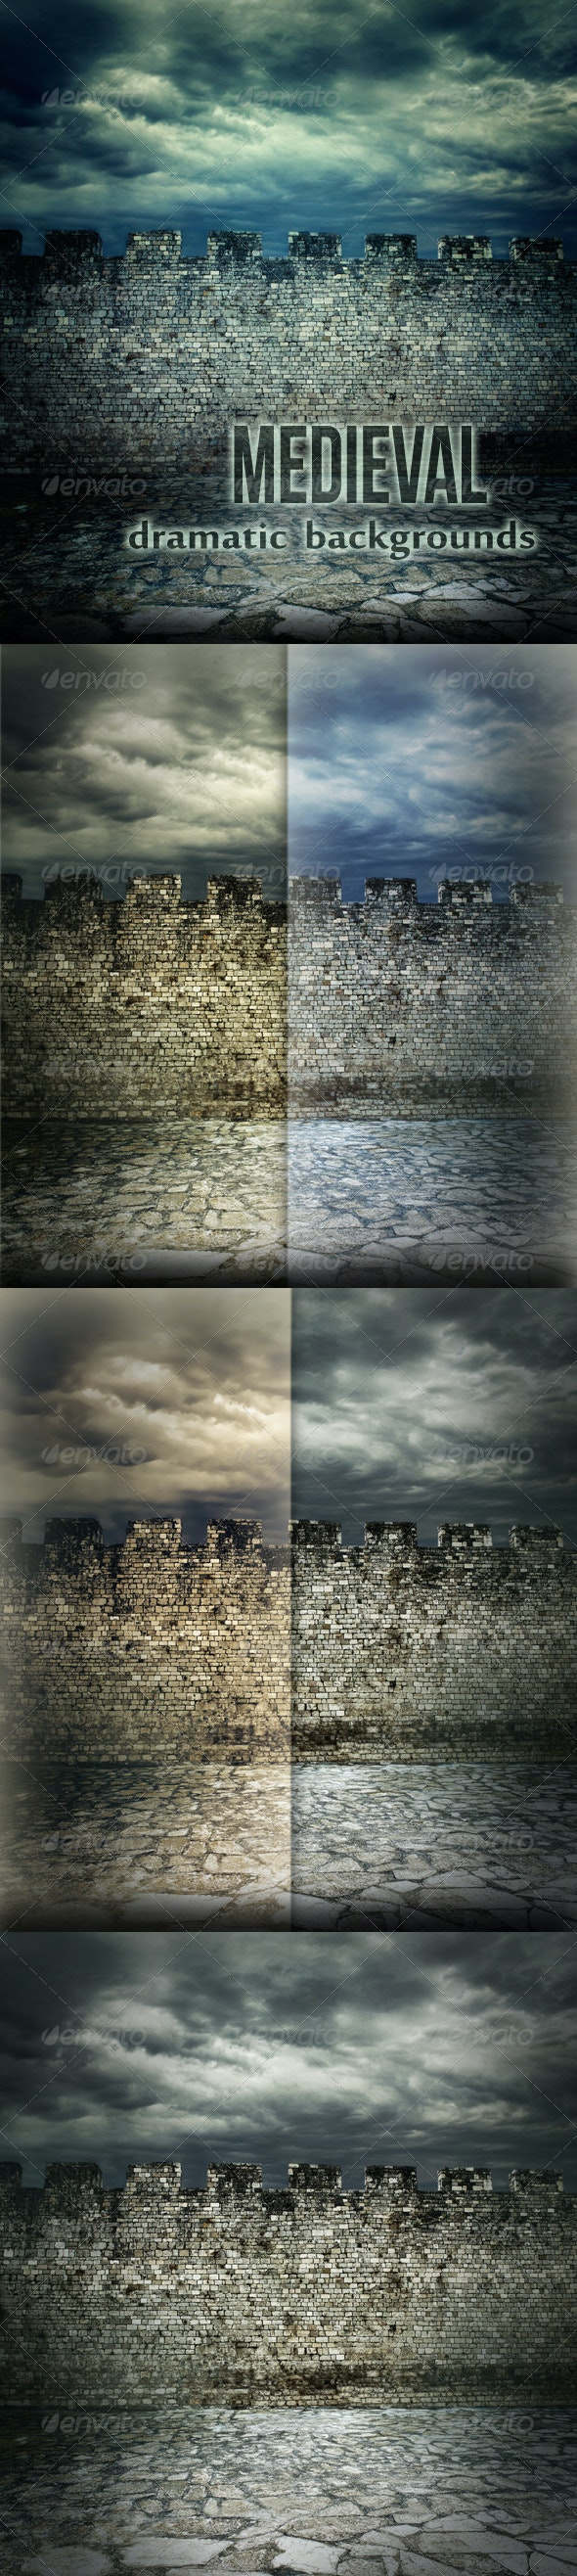 Medieval Wall Dramatic Backgrounds - Urban Backgrounds